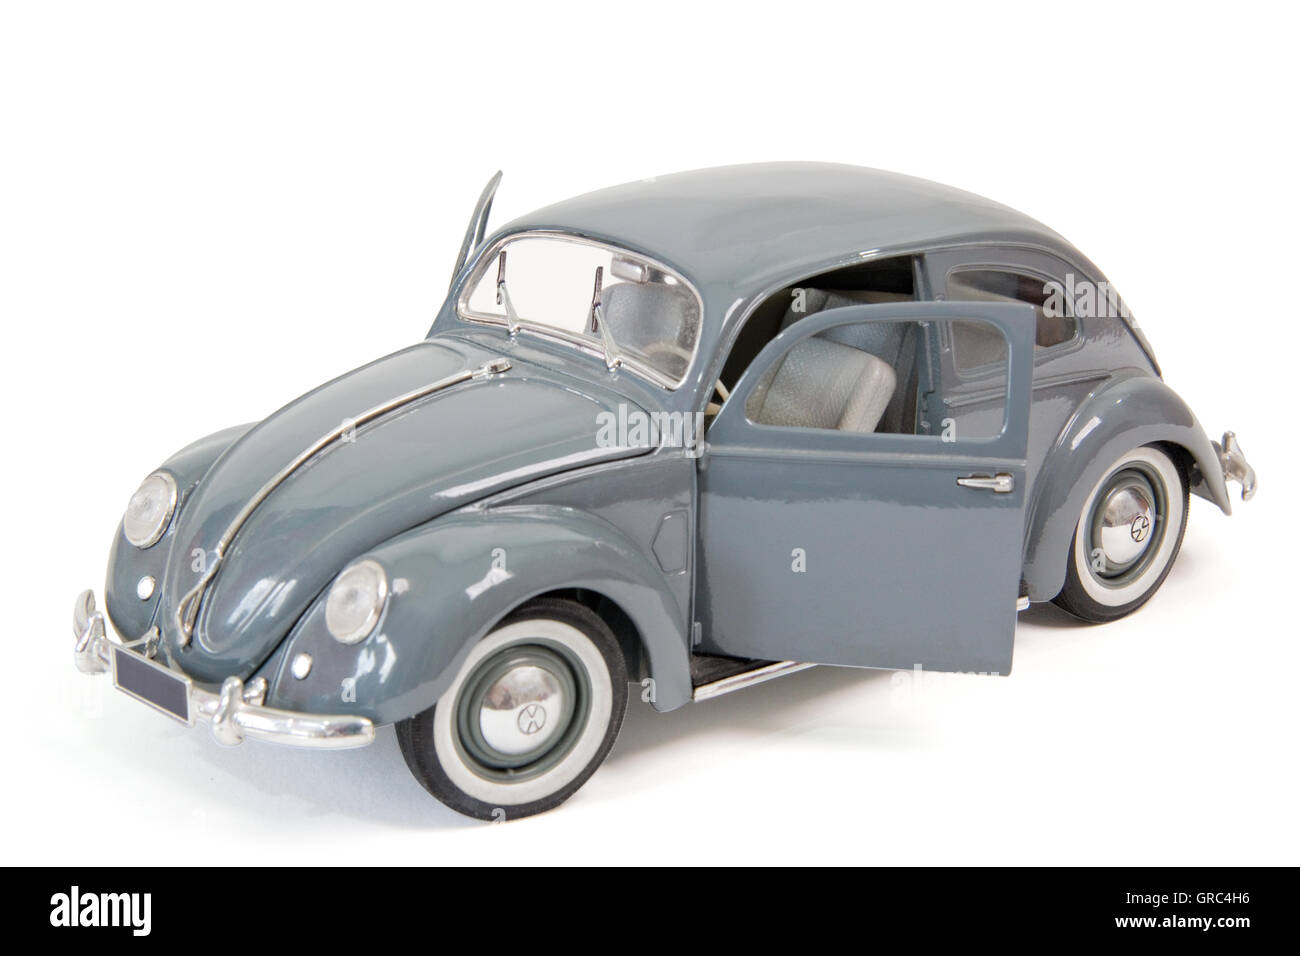 Old Beetle As Model Car - Stock Image